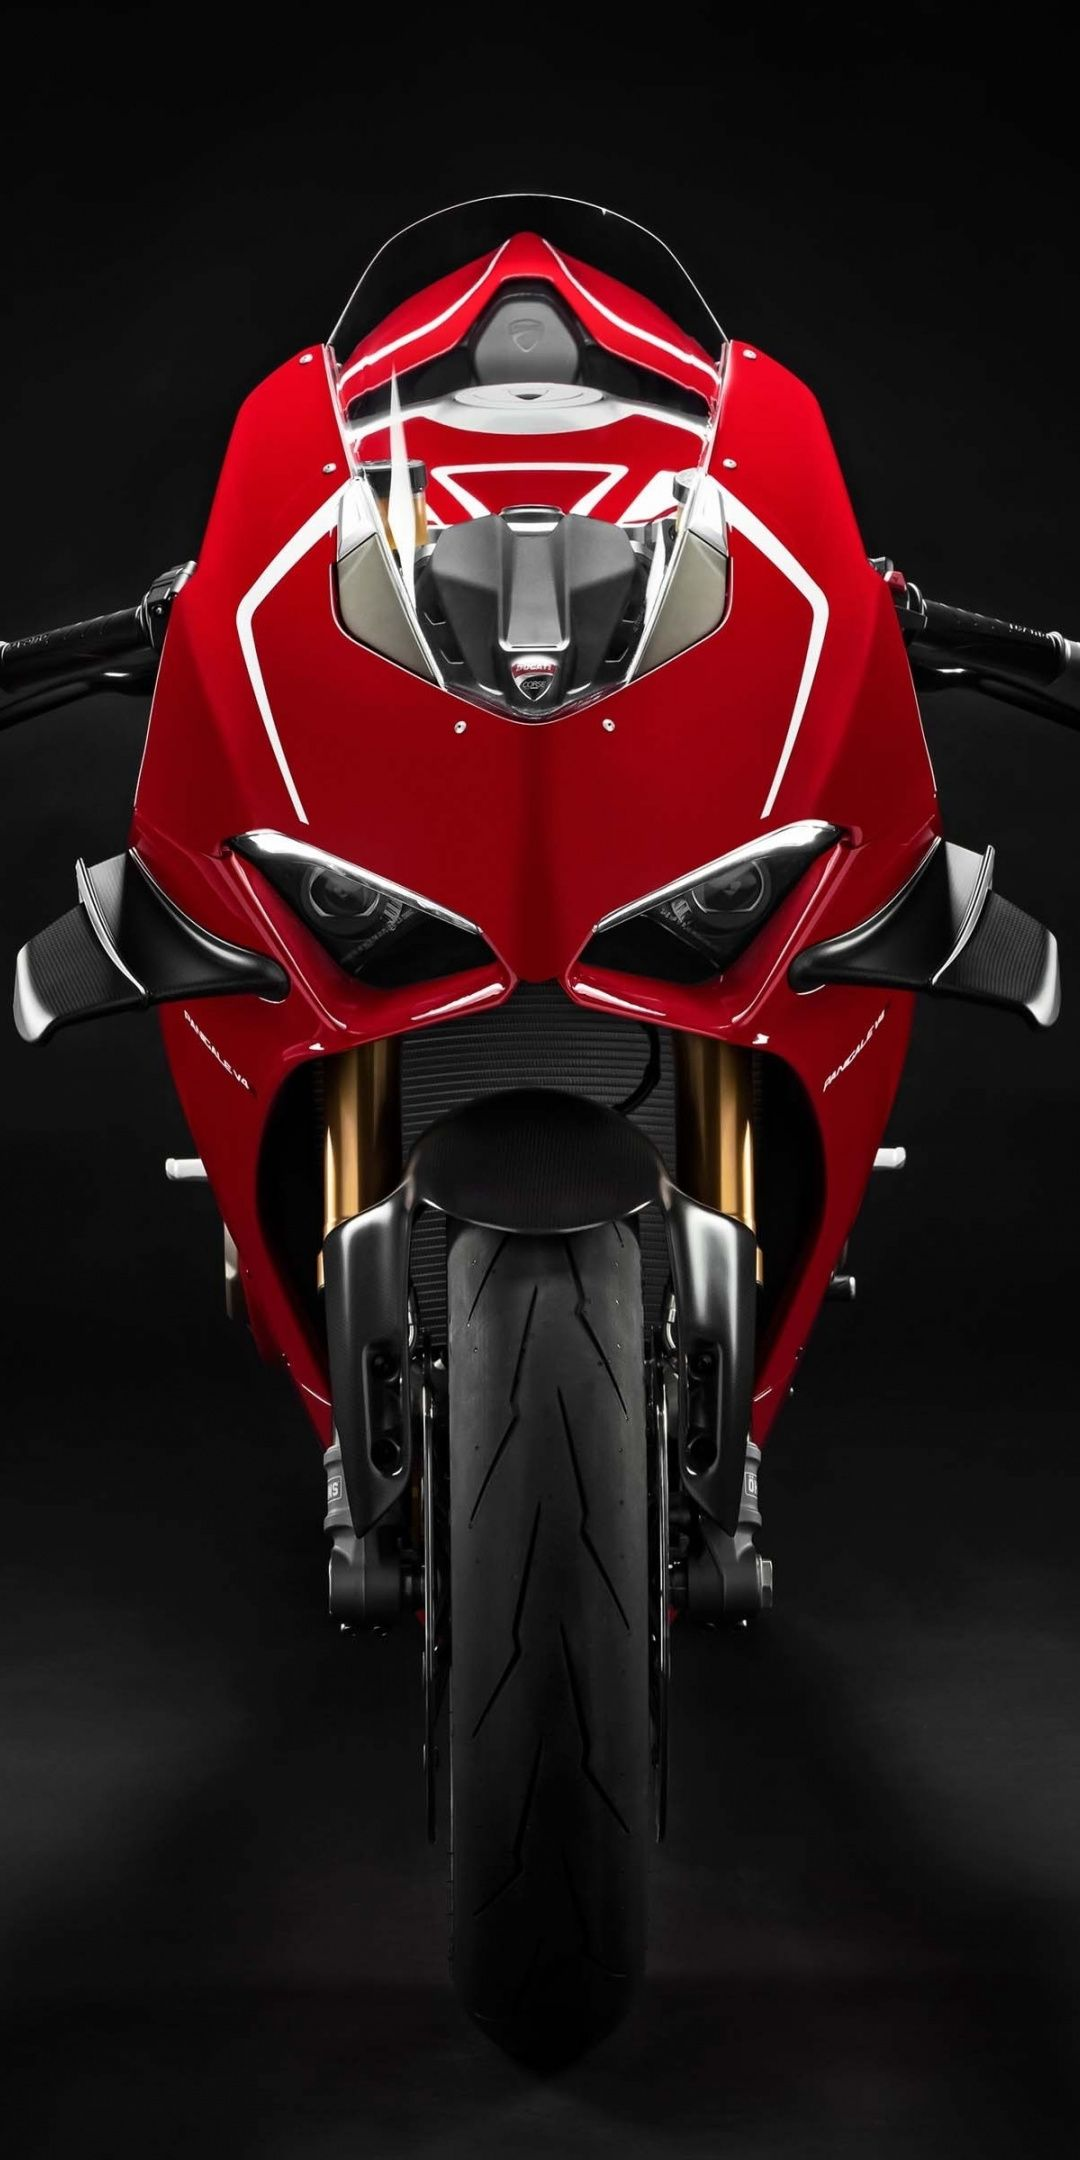 Ducati Panigale V4 R Pure Racing Bike 2019 1080x2160 Wallpaper